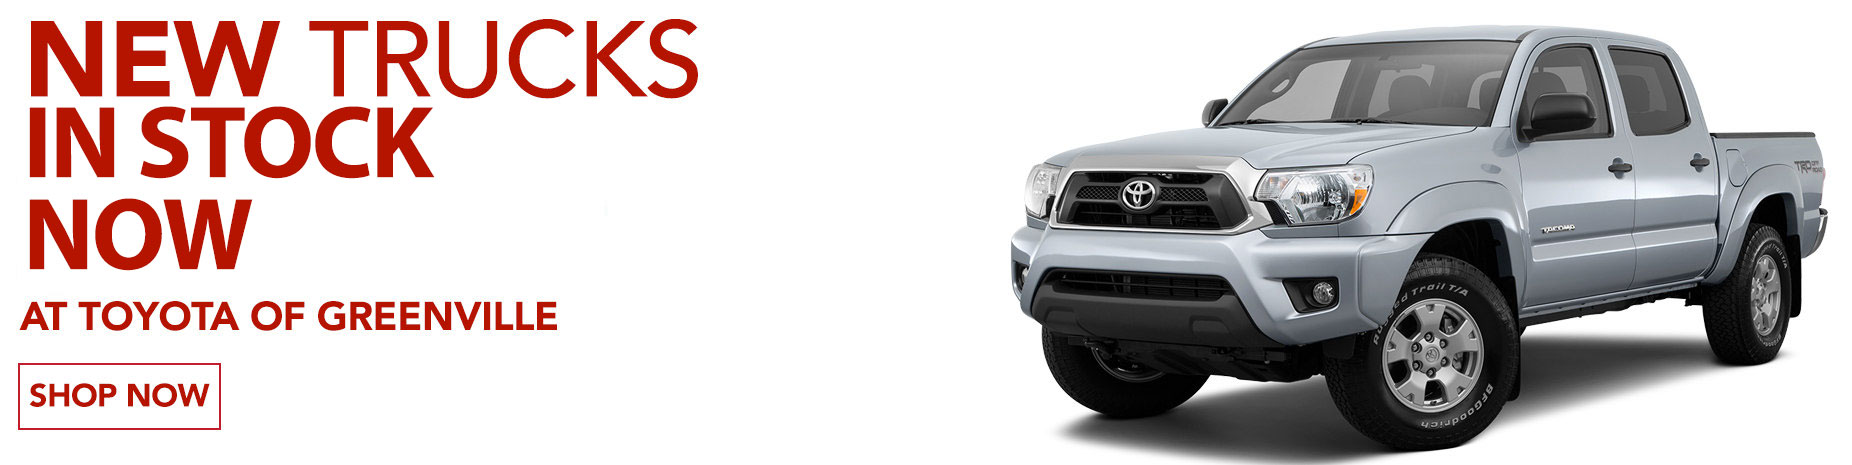 Trucks for Sale Greenville | Toyota Trucks | Tundra & Tacoma